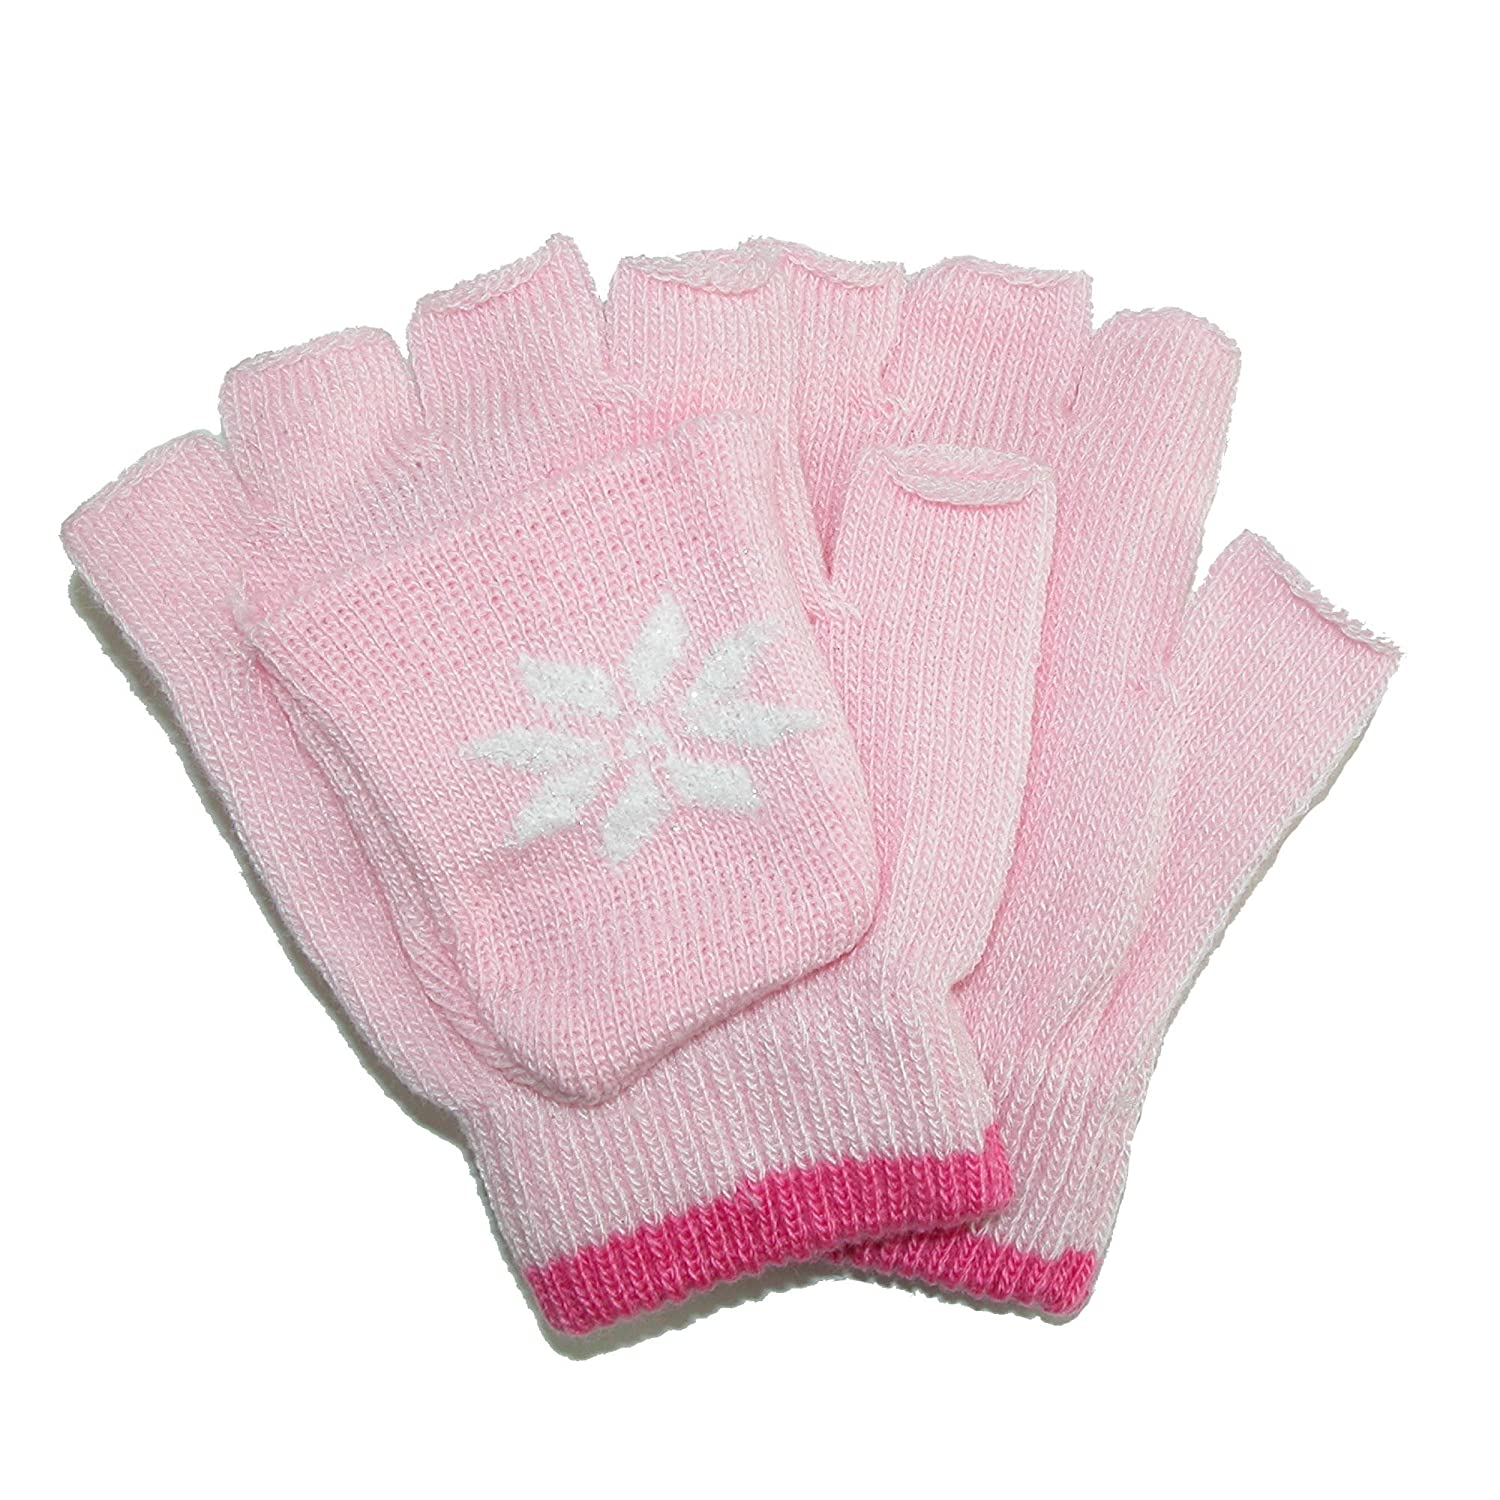 CTM Girls' Stretch Convertible Fingerless Winter Mittens/Gloves, Fuschia/Pink GS-GG-216-DPK